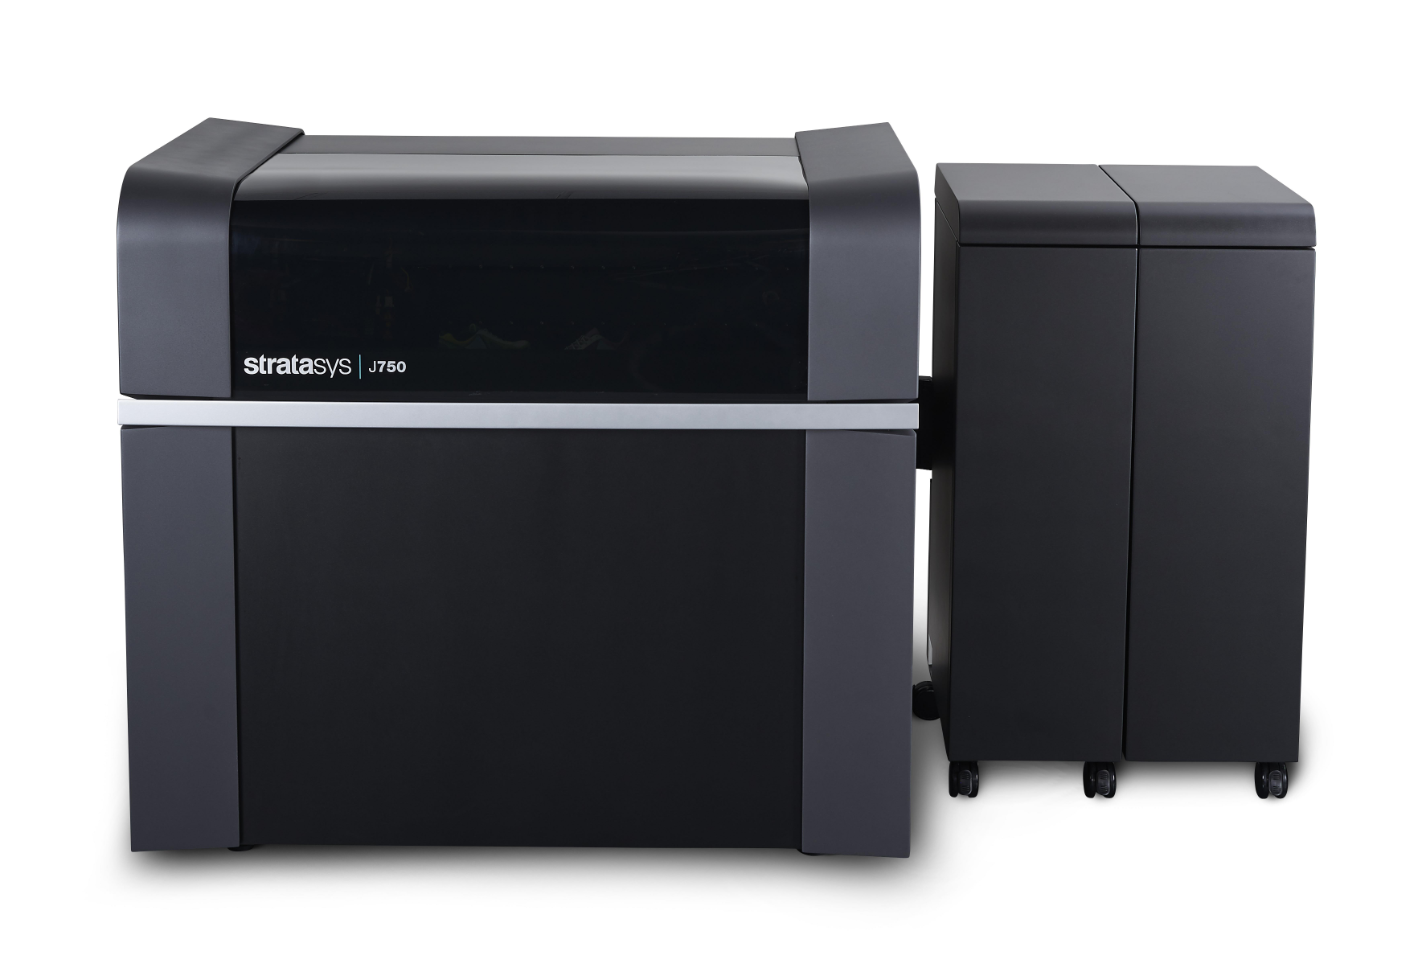 Stratasys J750 3D printer seen from the front.